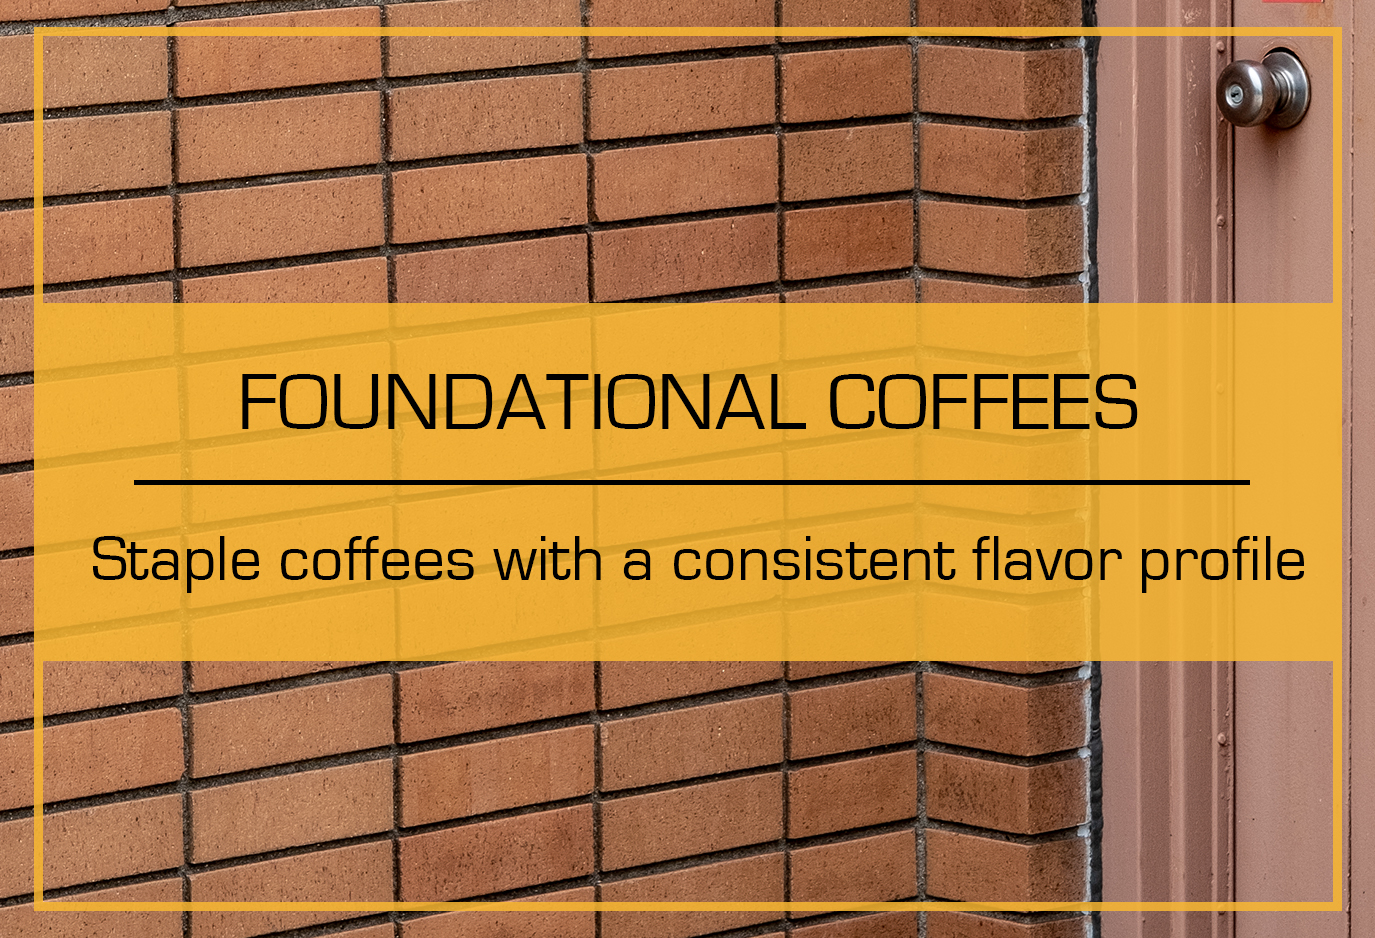 FoundationalCoffeeSubscription_2019Banner.jpg